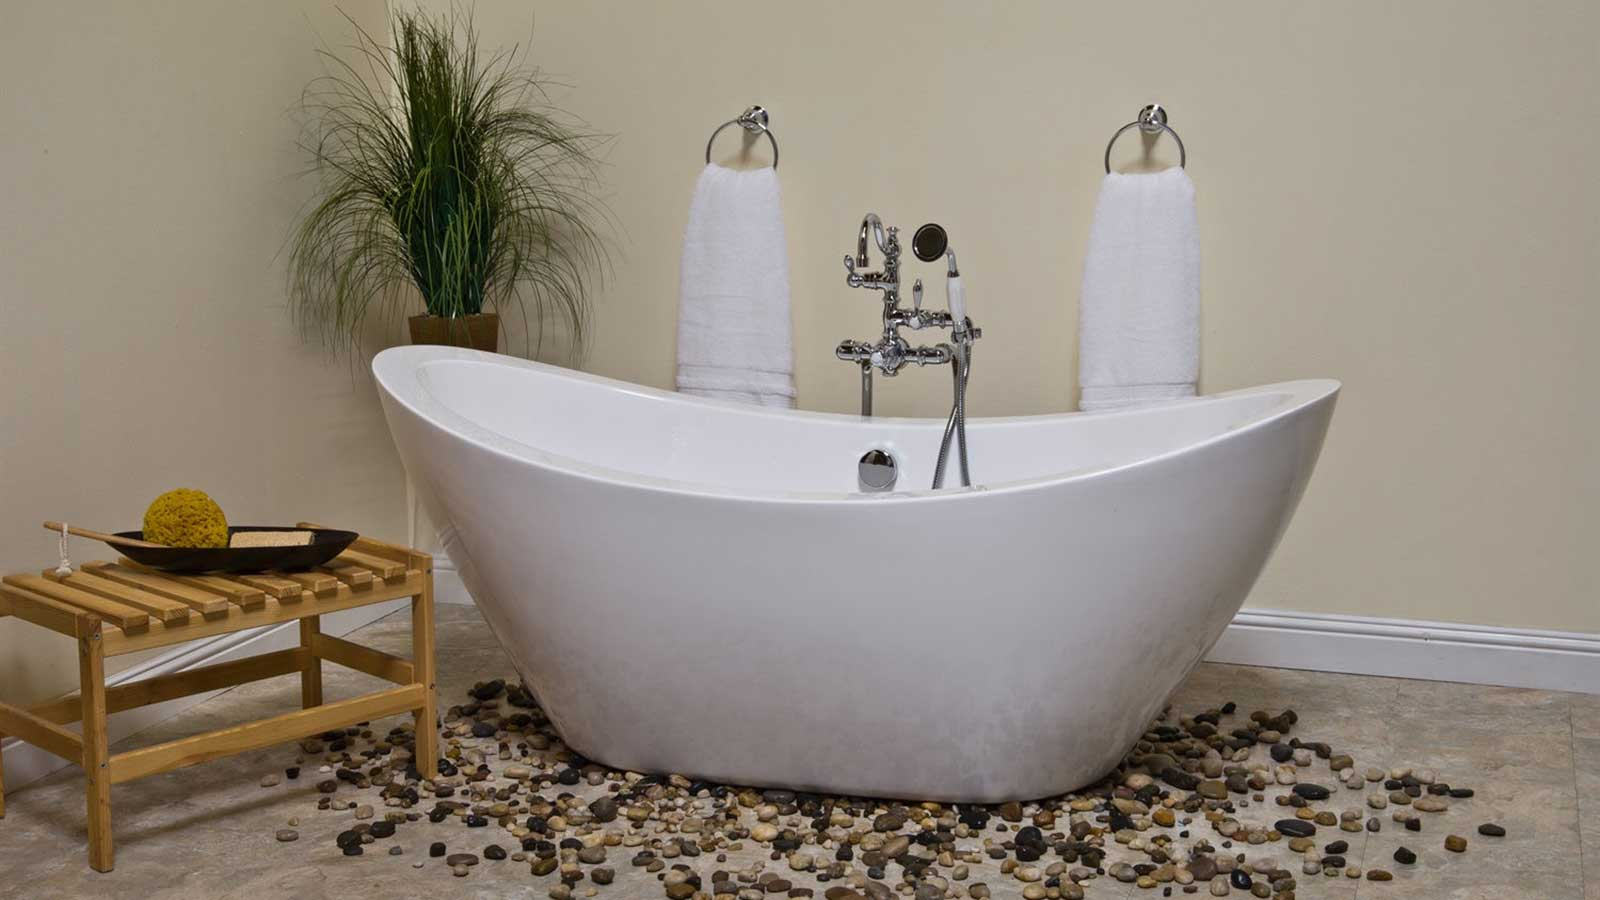 Bathtub materials they make a difference for Cast iron tubs vs acrylic